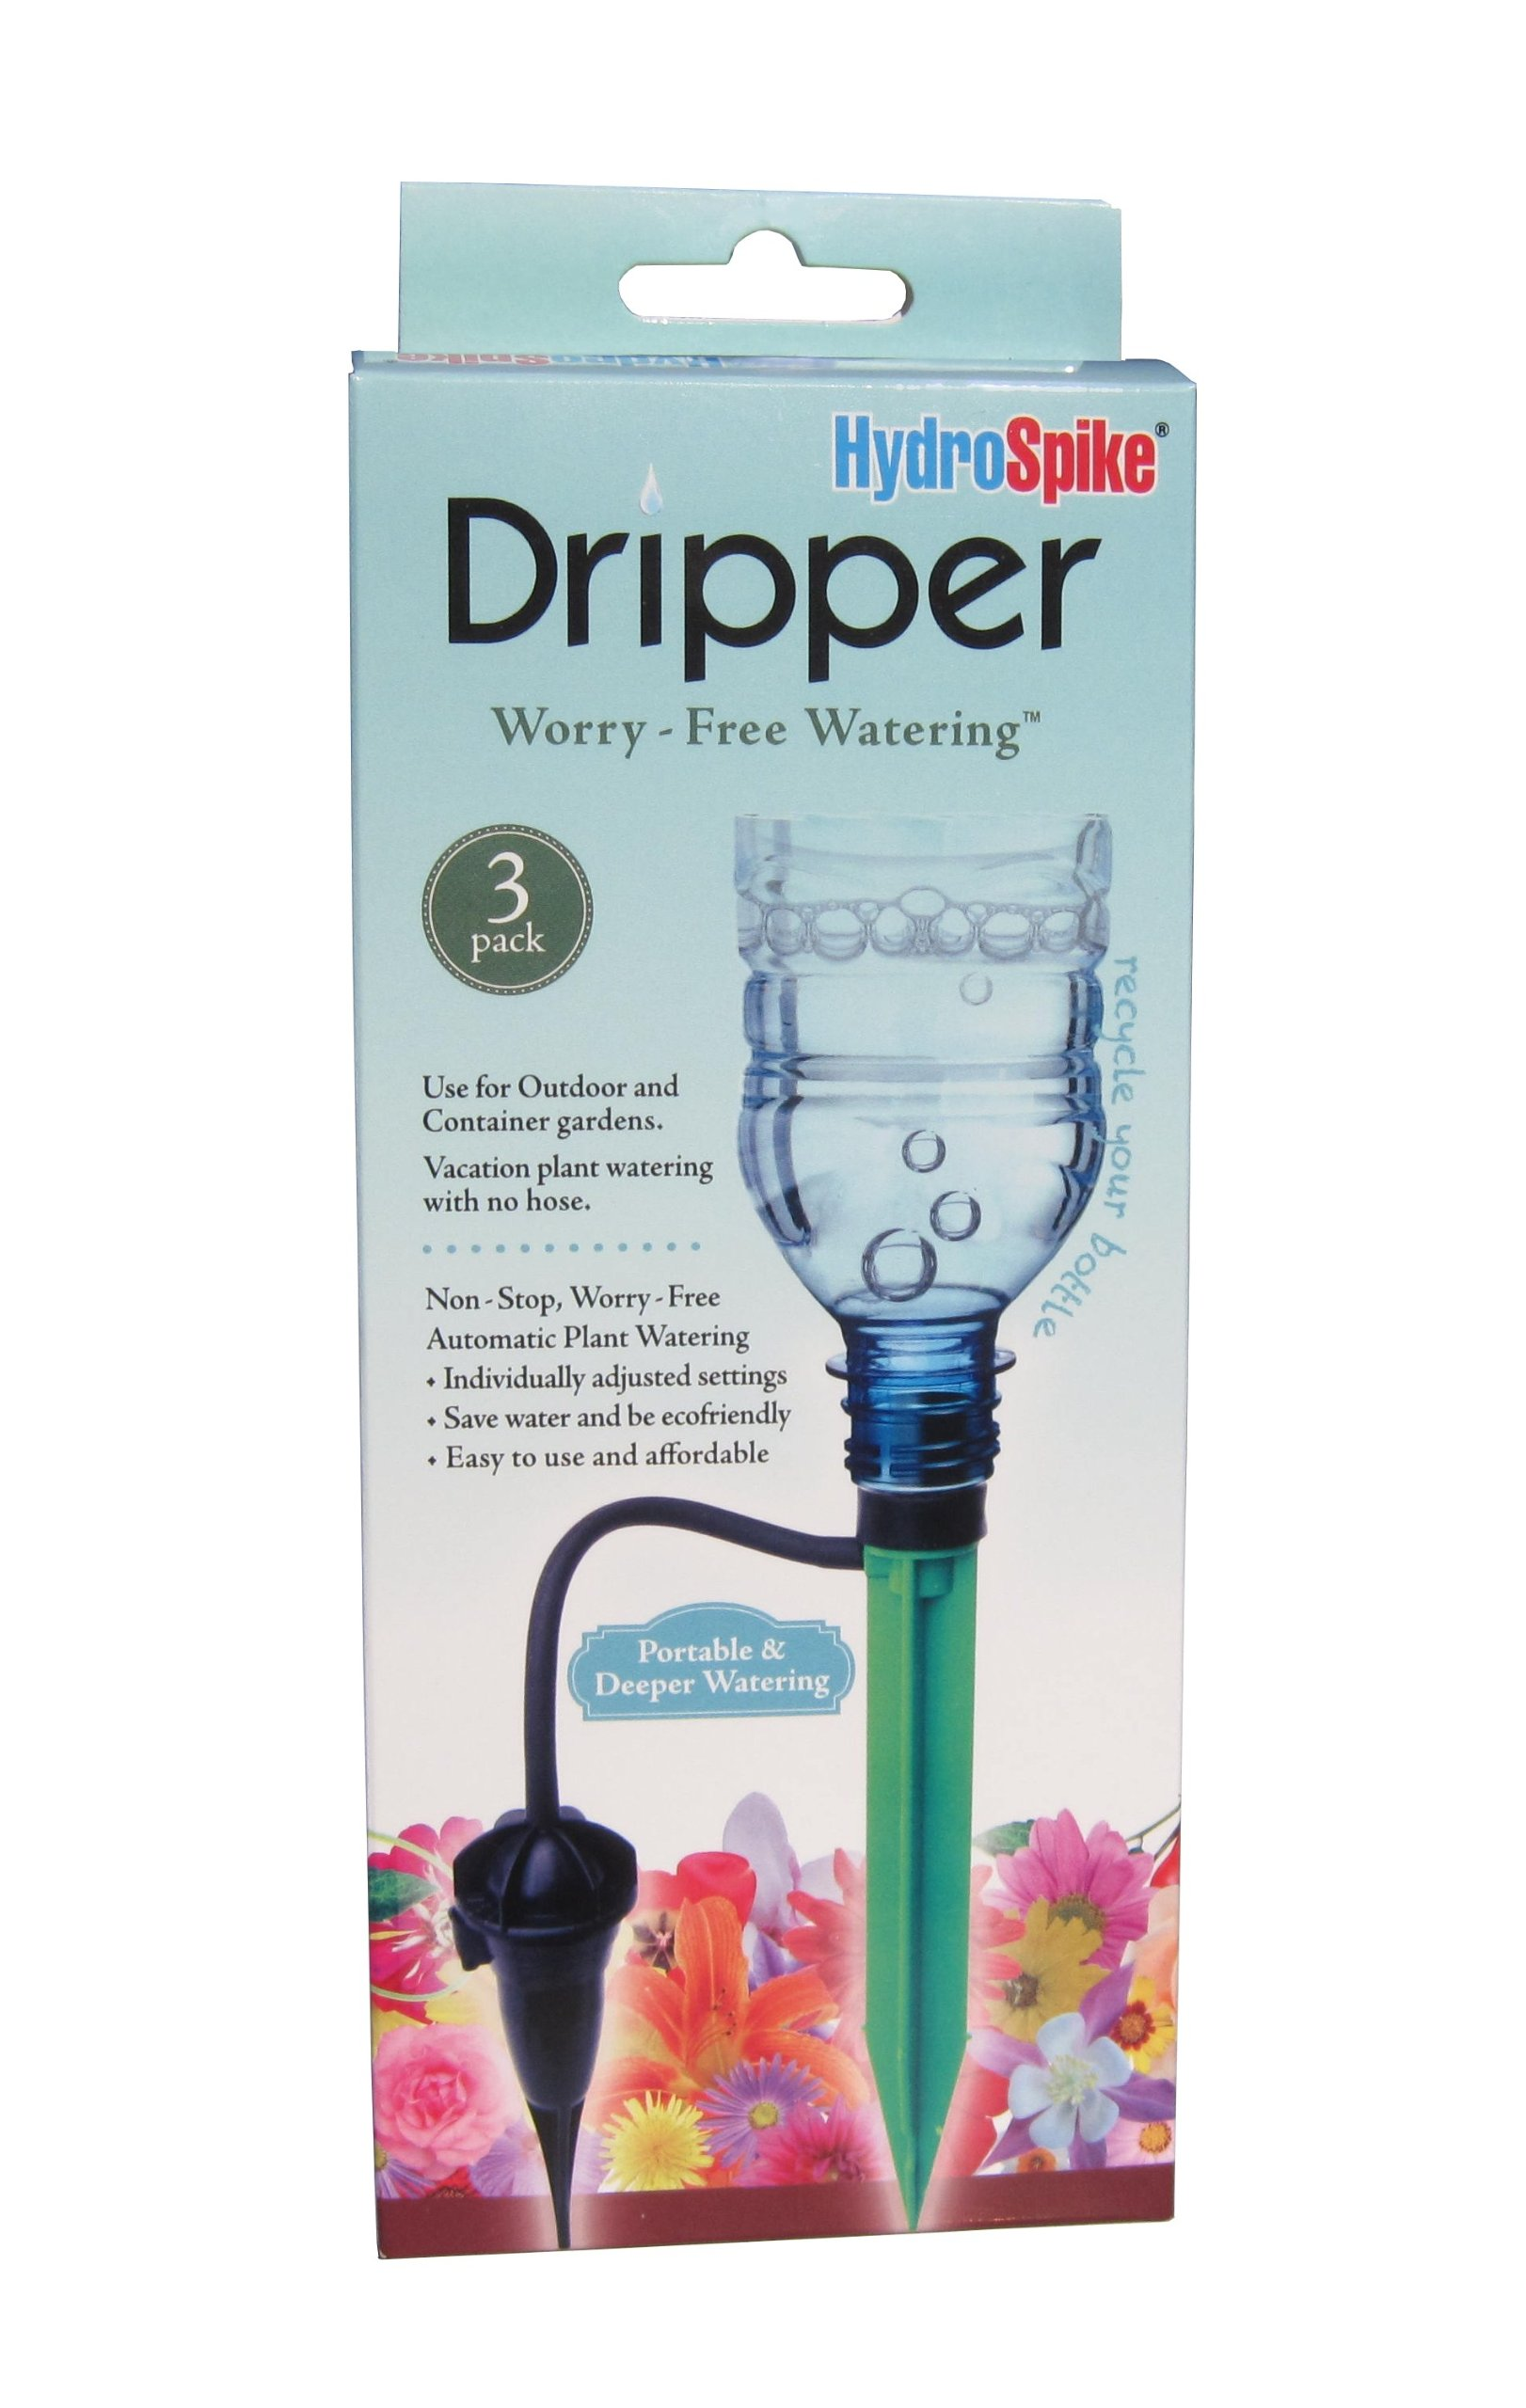 Hydrospike Dripper 3-pack Worry-free Adjustable Watering Kit - Outdoor & Indoor